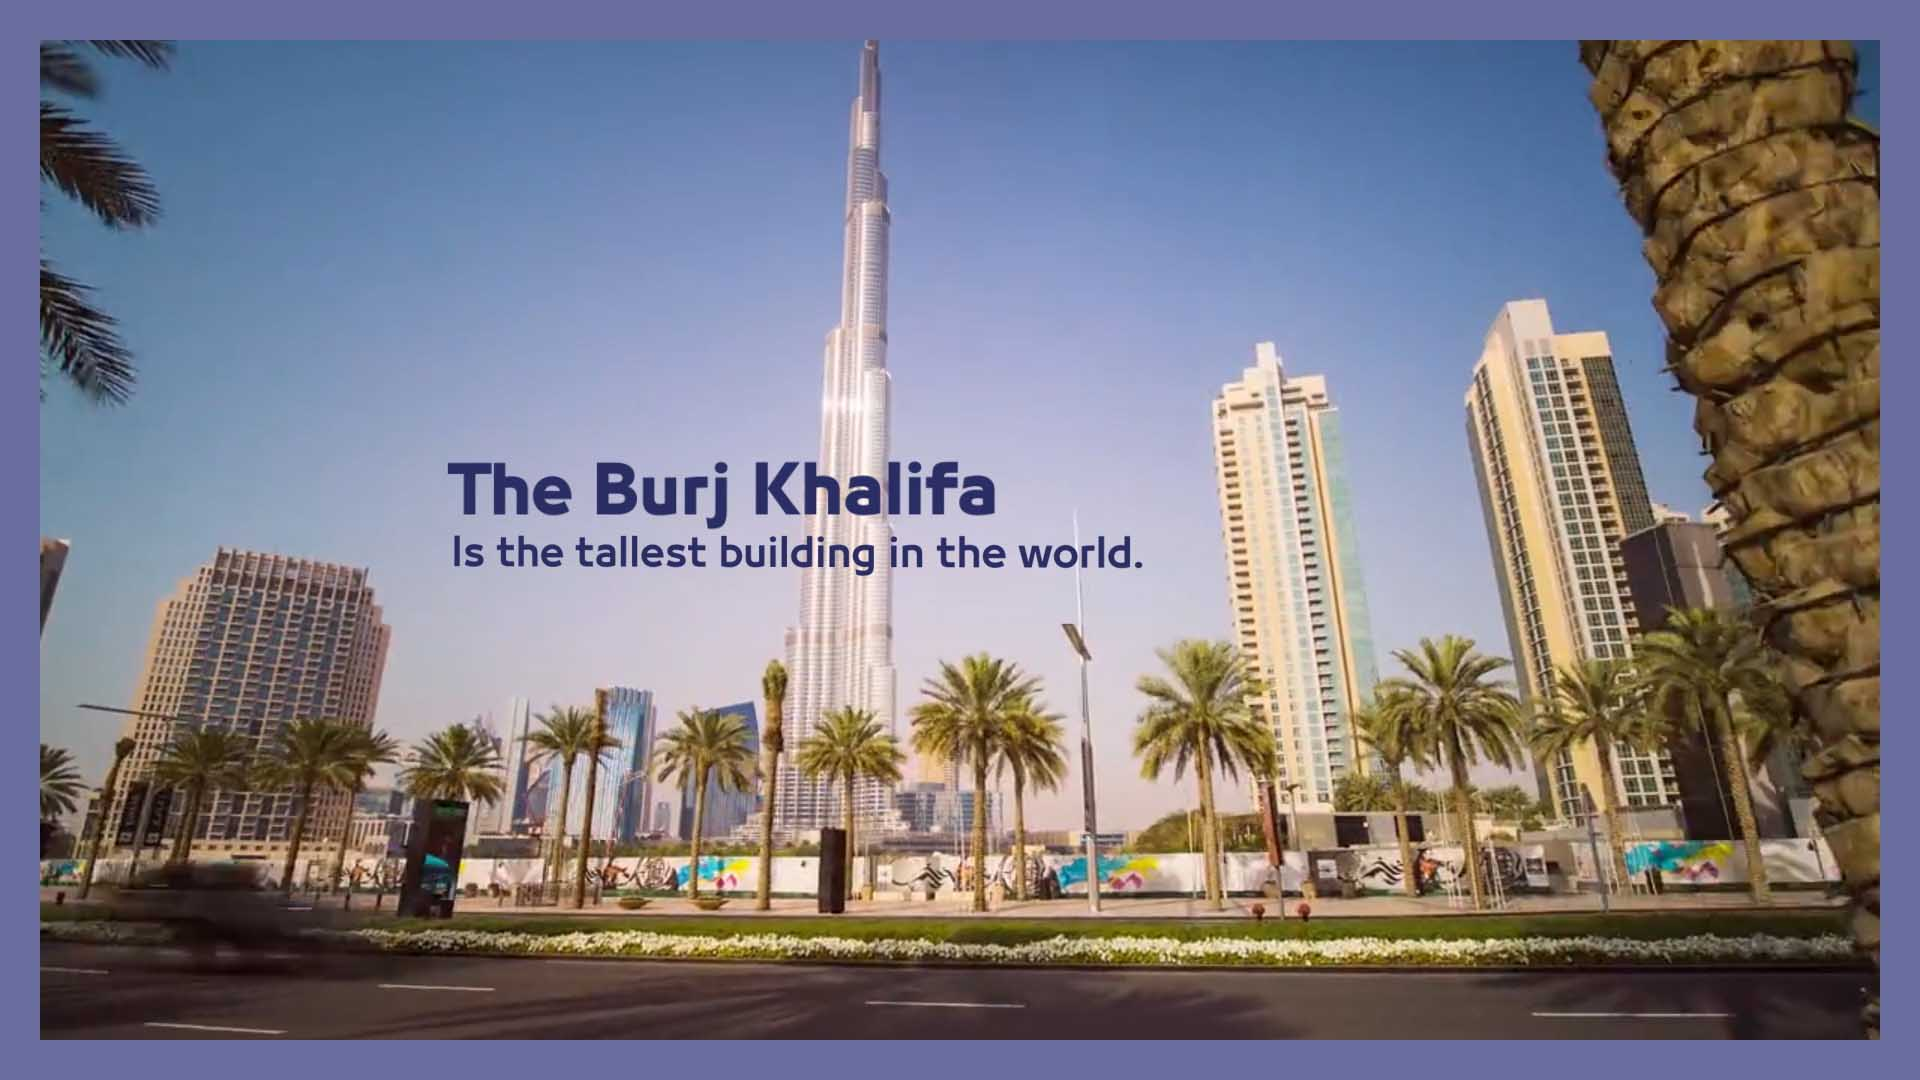 Burj Khalifa data on footage